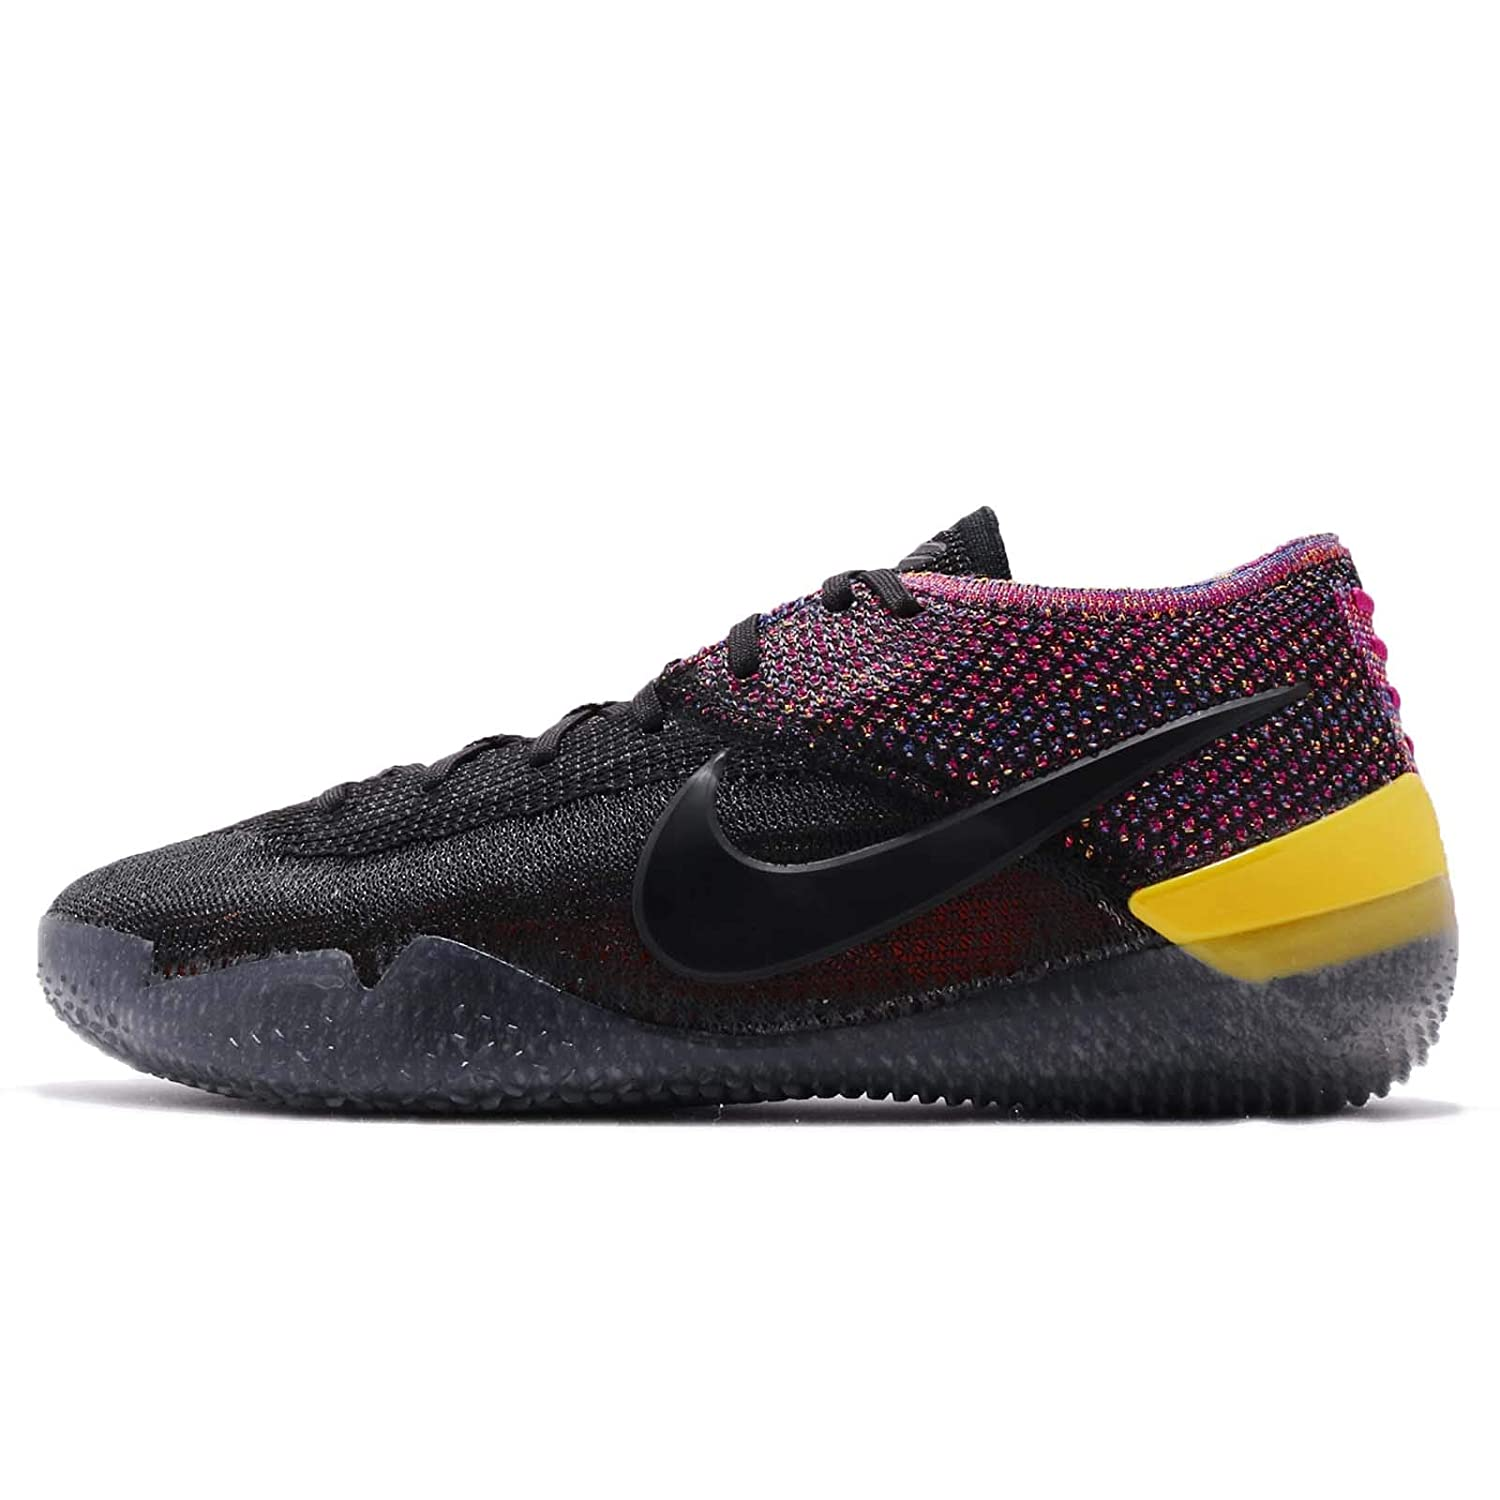 huge discount c0daa 31897 Nike Men's Kobe AD NXT 360 Basketball Shoes (10.5, Black/Pink)